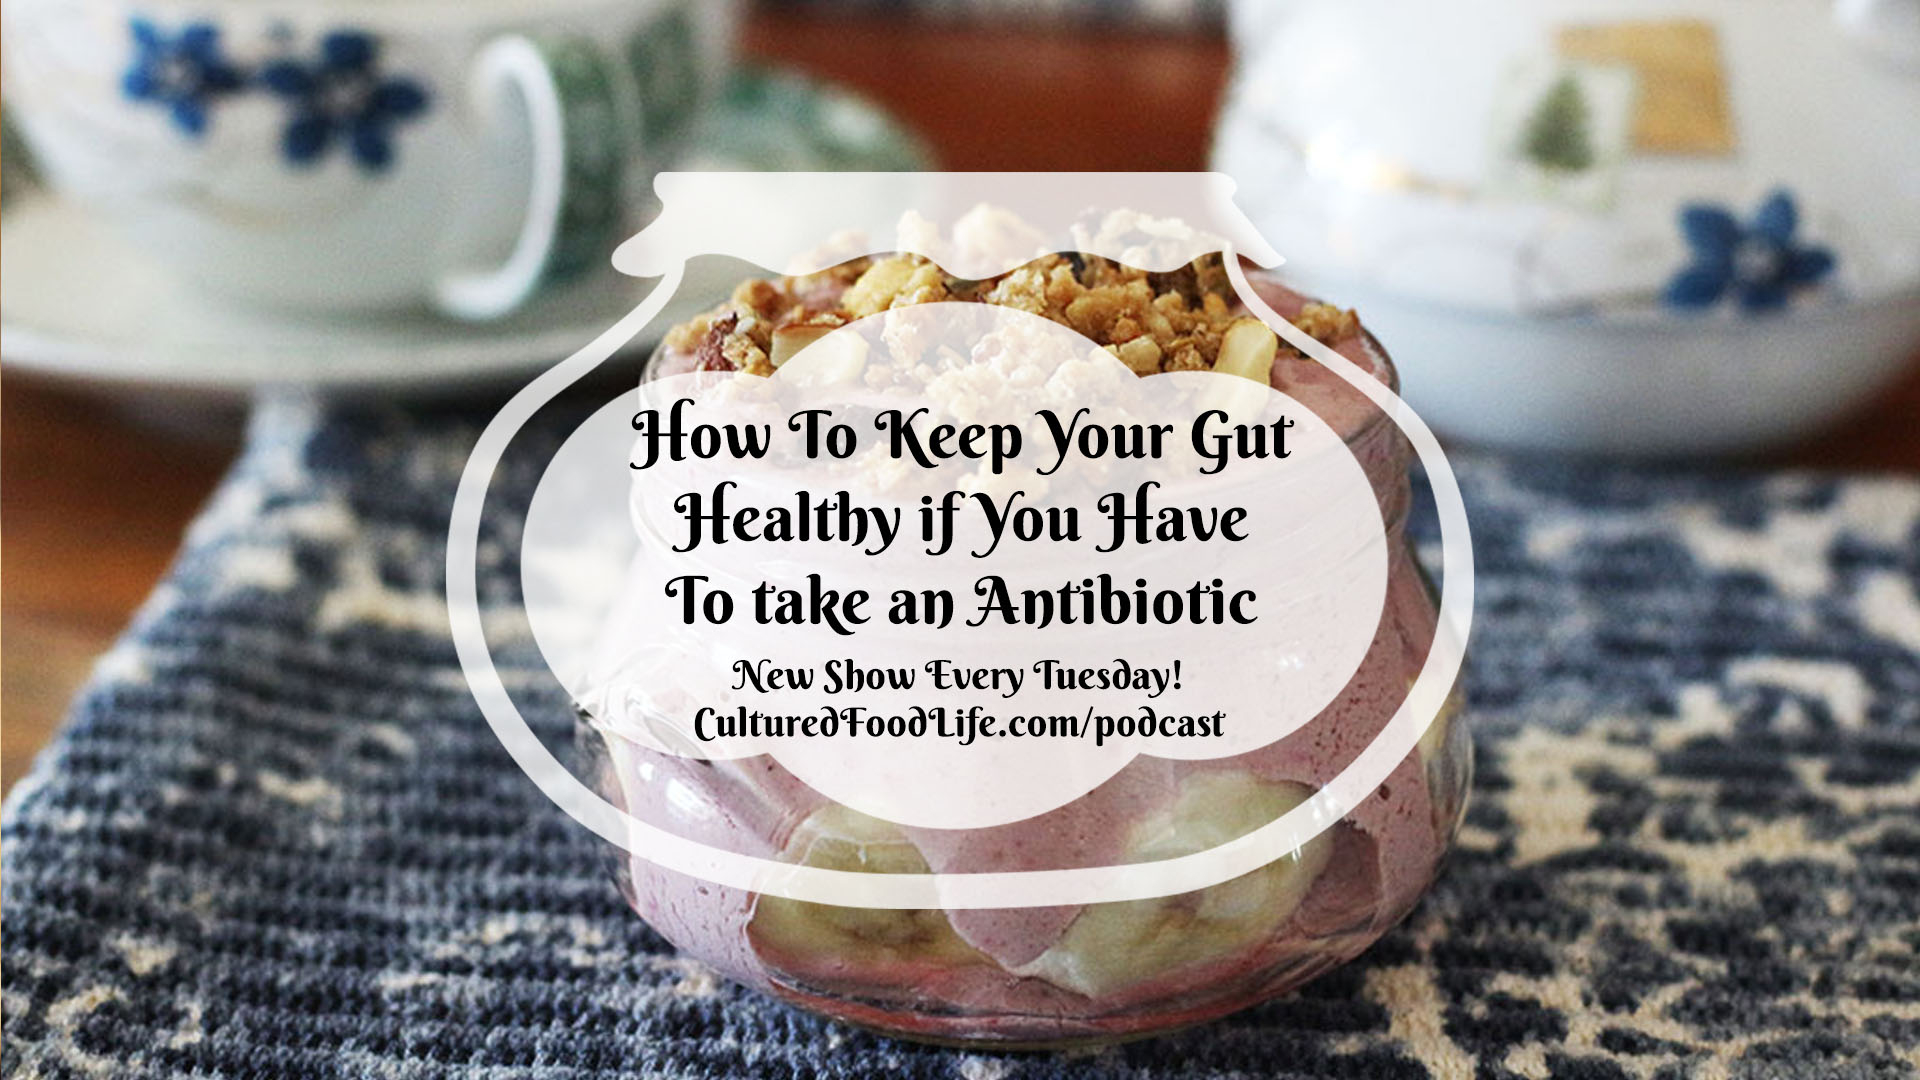 How To Keep Your Gut Healthy if You Have To take an Antibiotic full